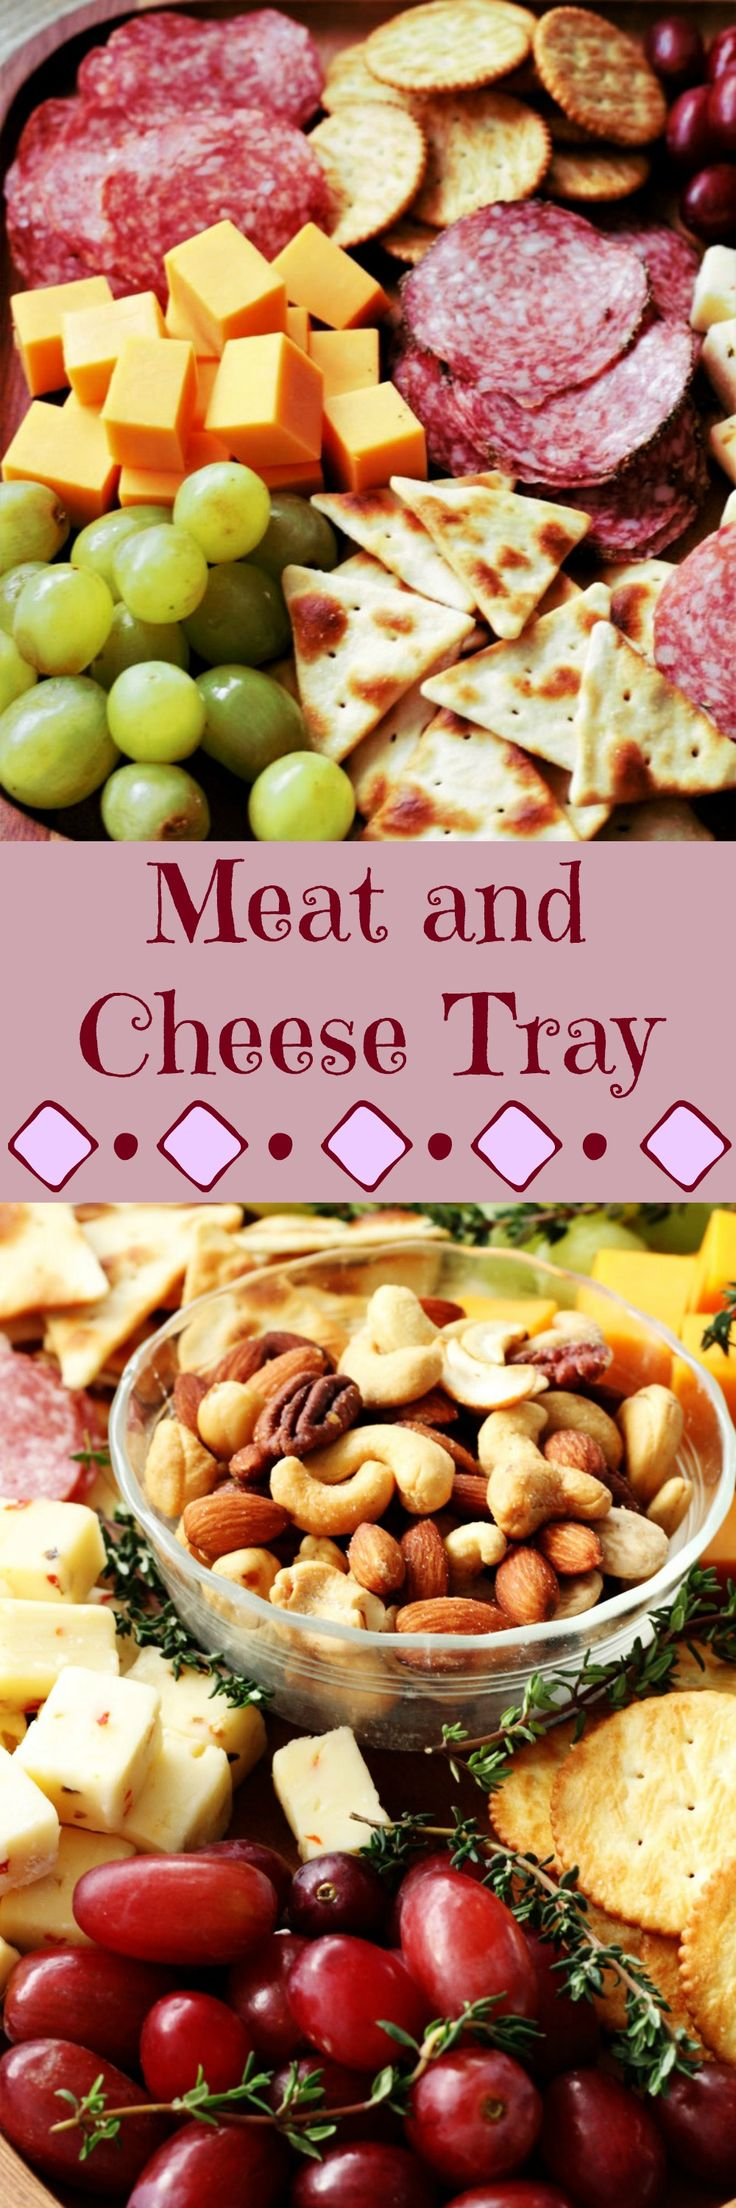 Meat and Cheese Tray, Recipe Treasures